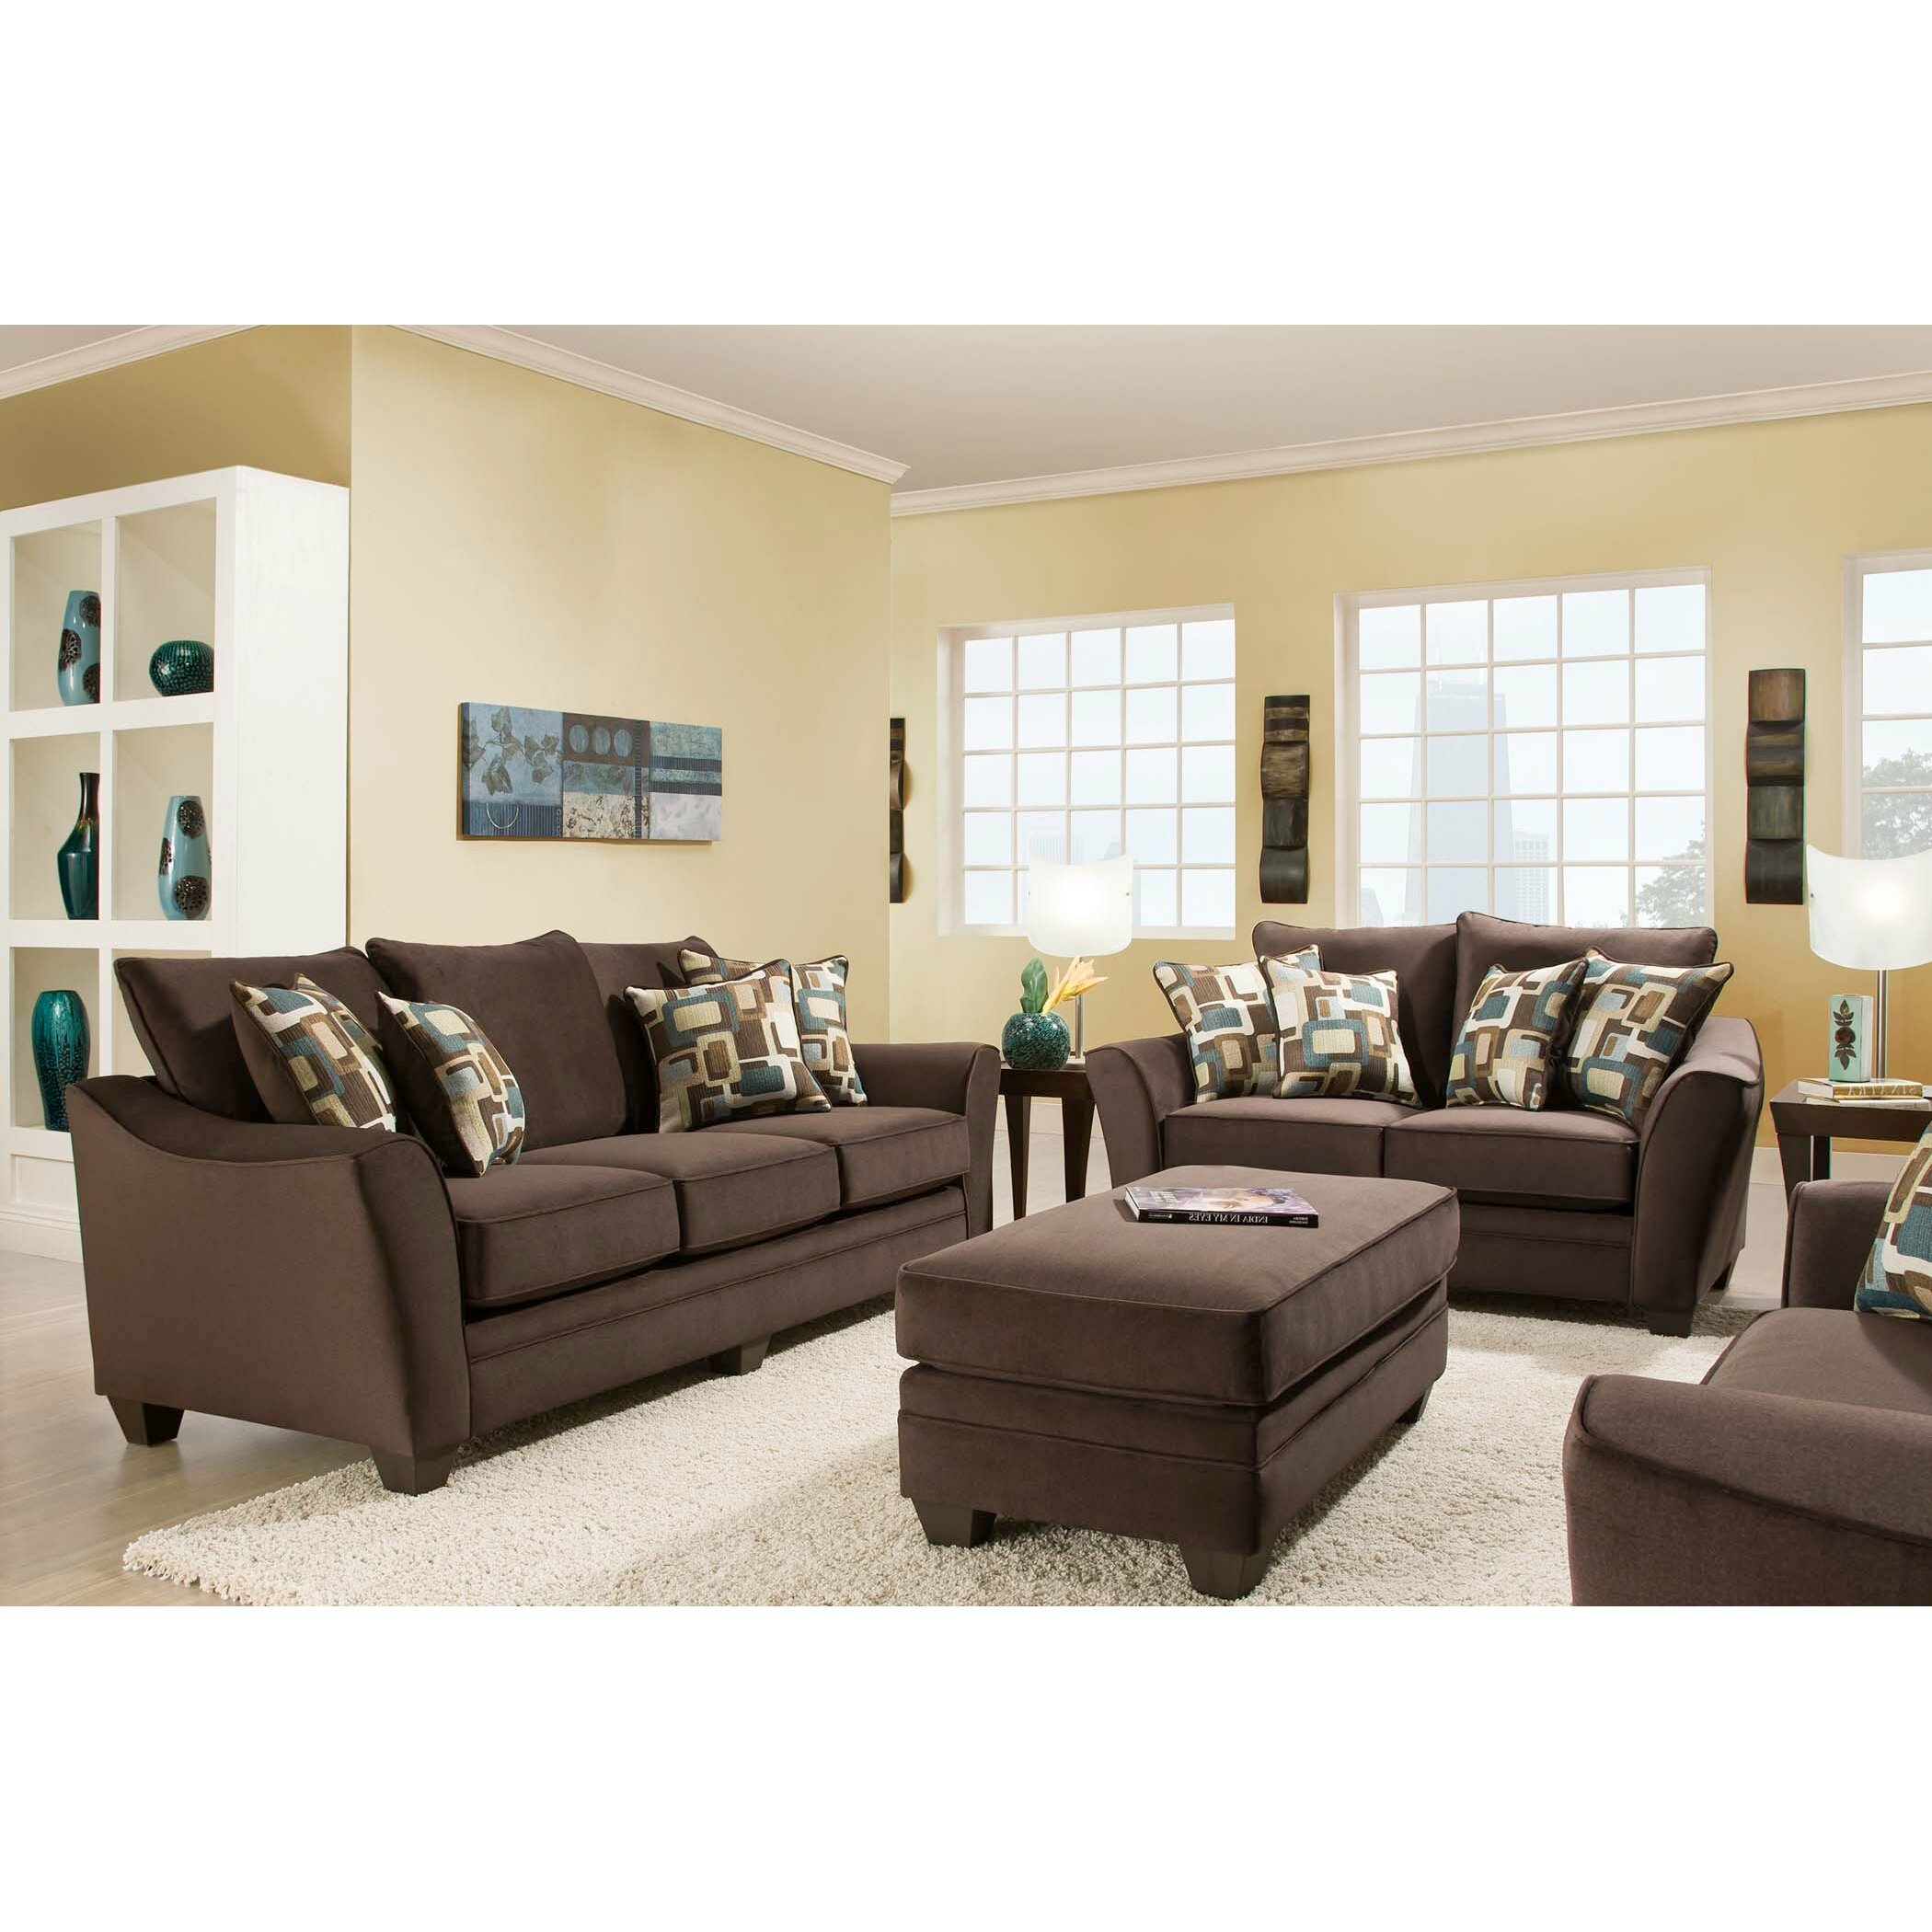 Wayfair living room furniture living room collection for J furniture usa reviews